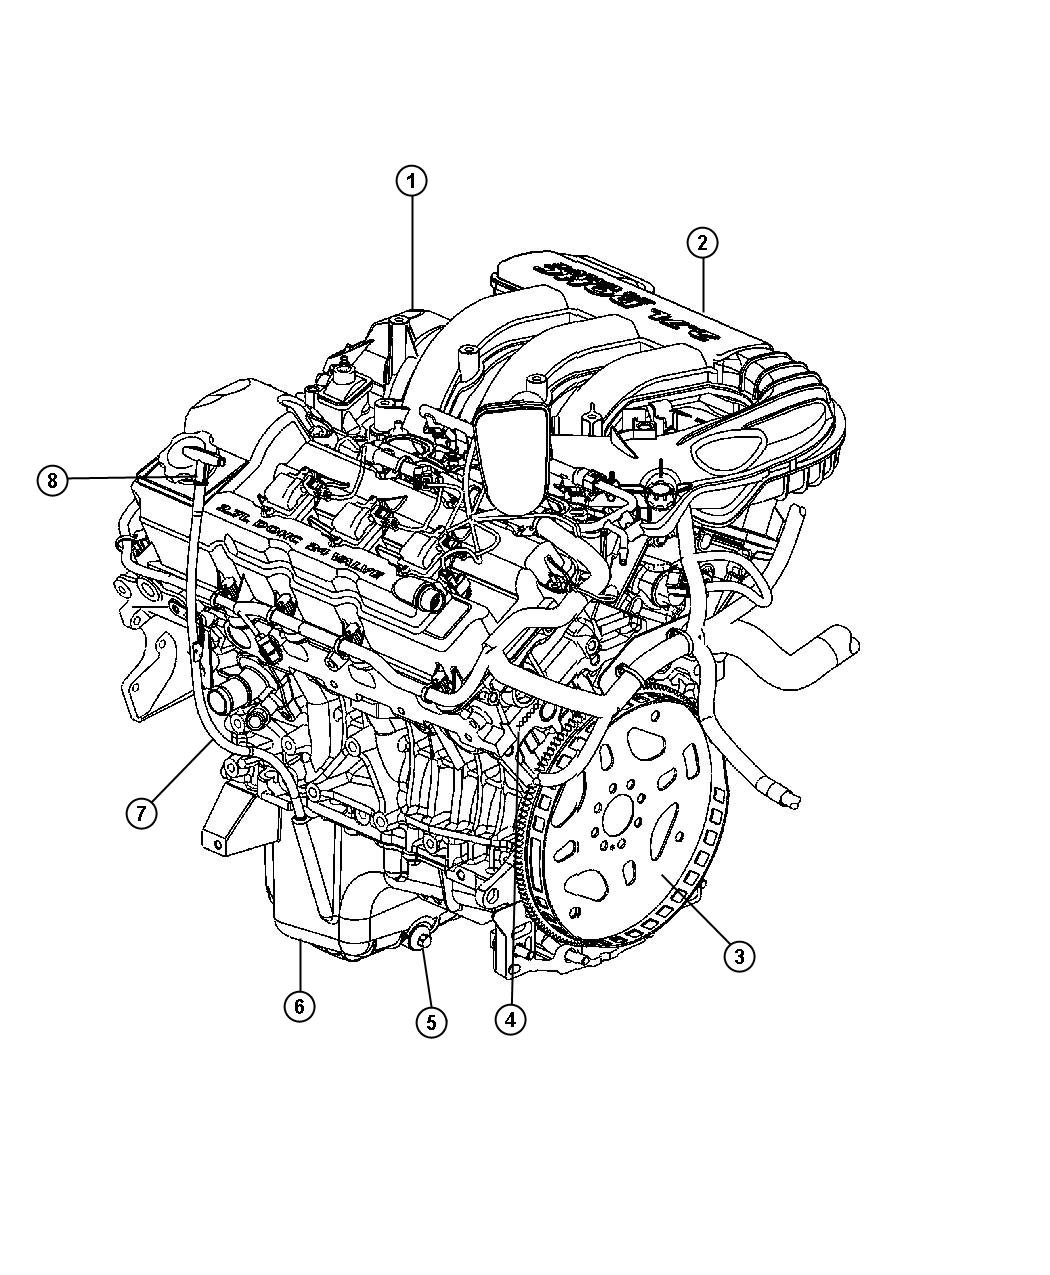 picture of chrysler 300 motor and engine parts  picture